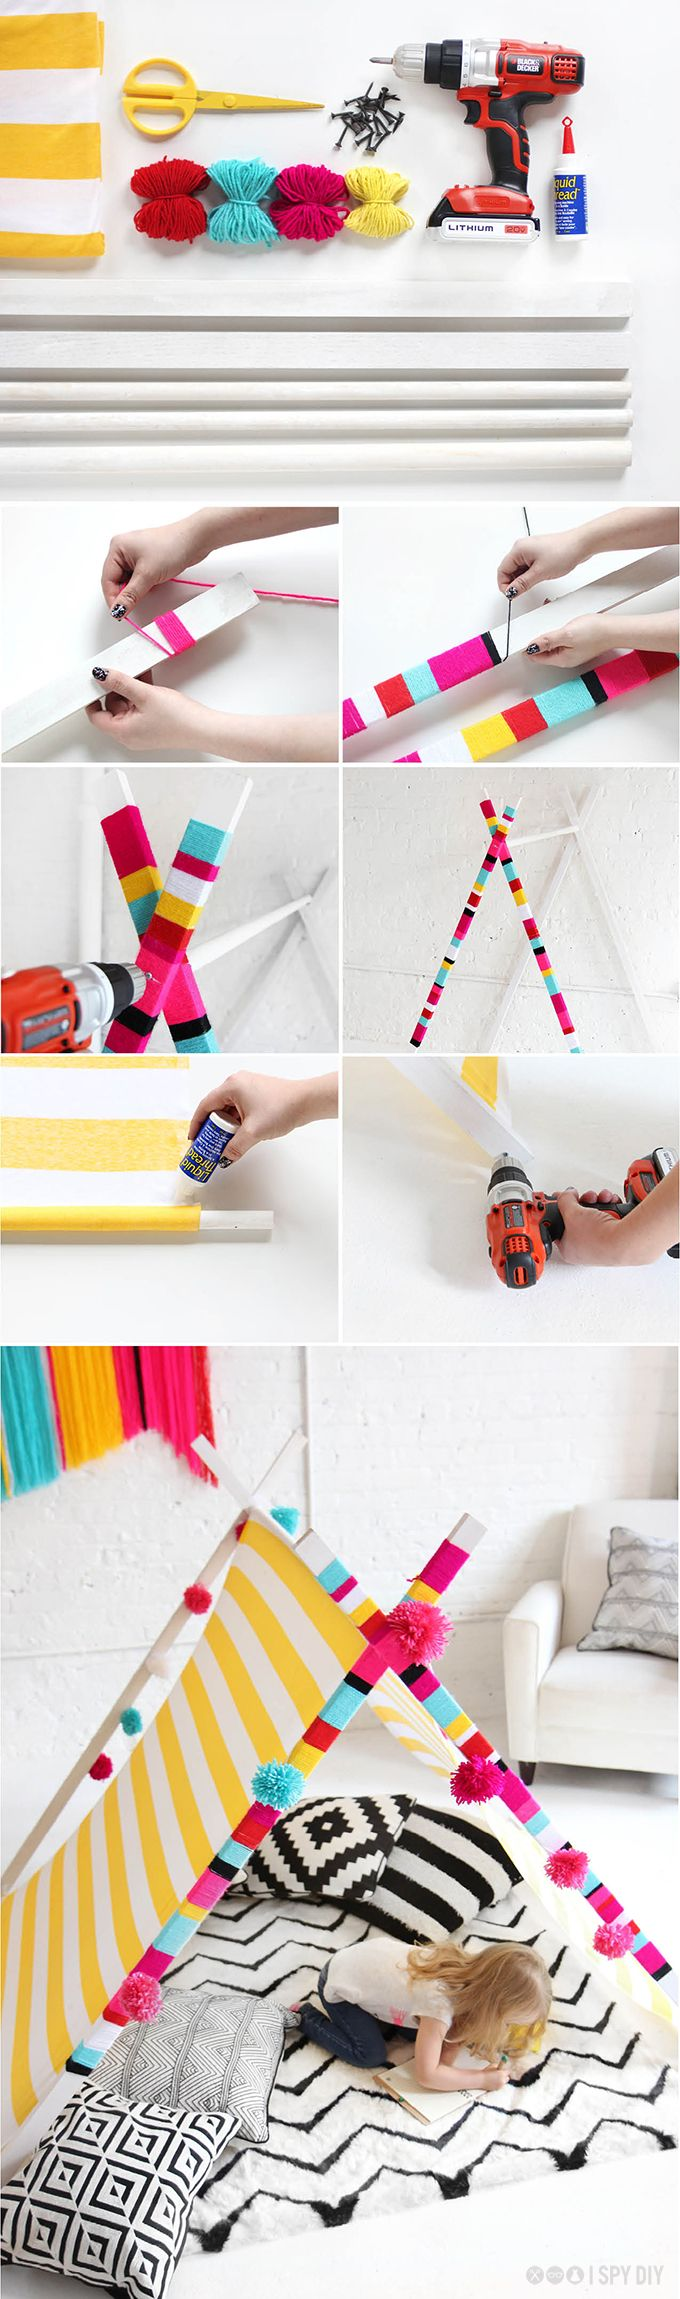 DIY STEPS | YARN WRAPPED TEEPEE | I SPY DIY